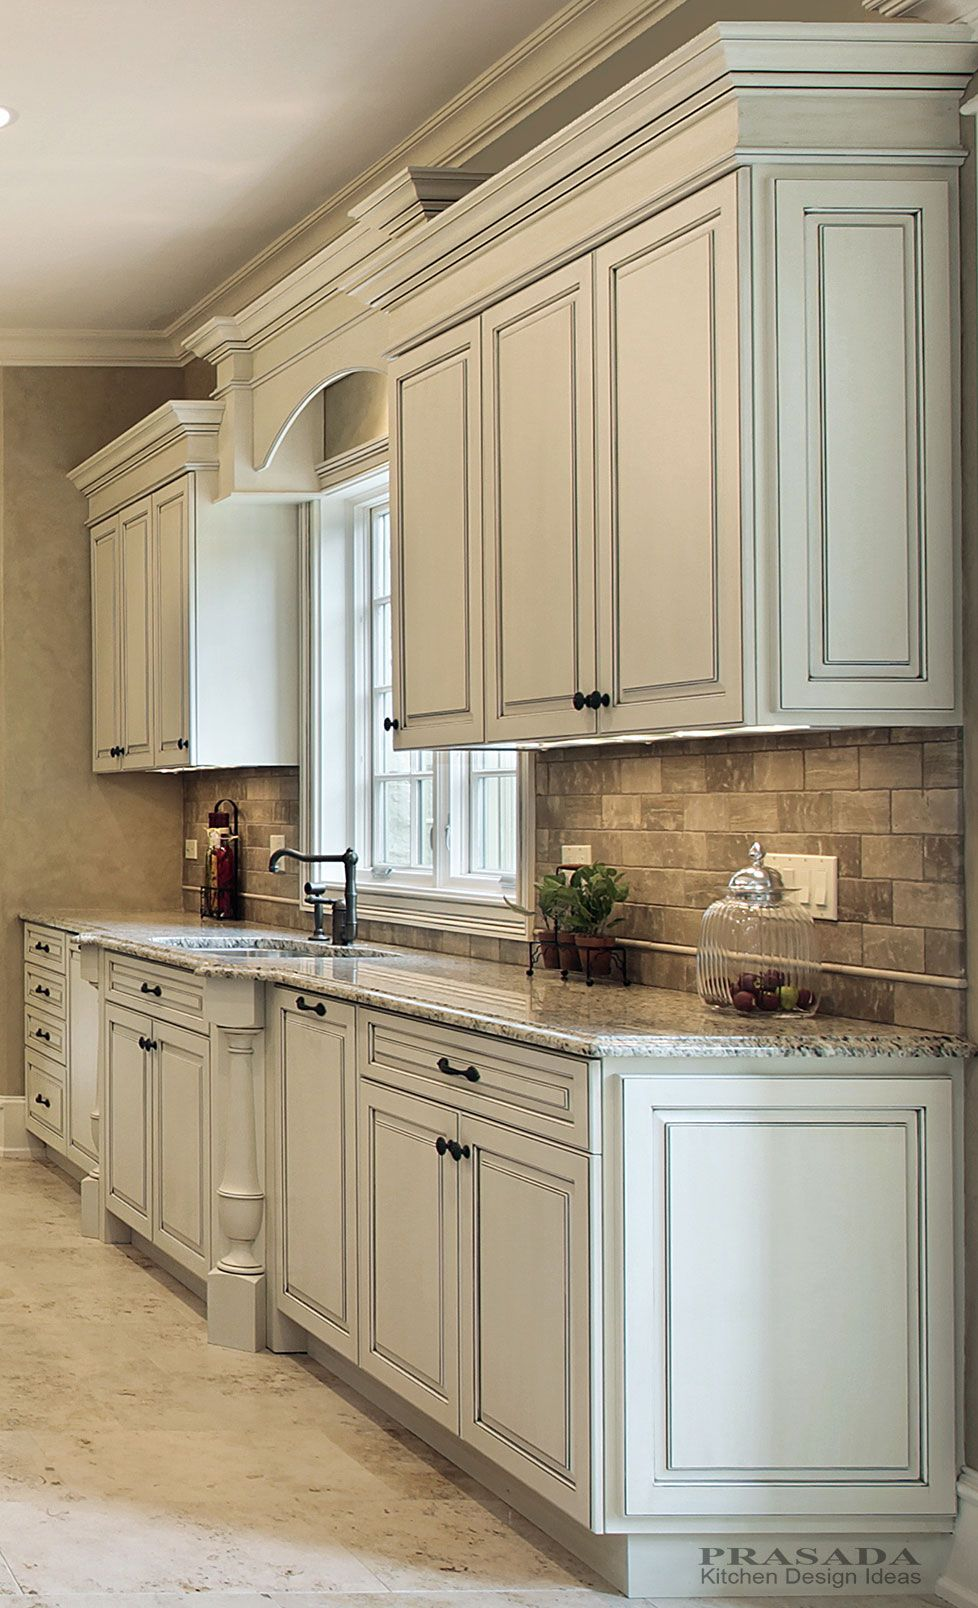 Kitchen Design Ideas Prasada Kitchens And Fine Cabinetry Antique White Kitchen Kitchen Design Antique White Kitchen Cabinets